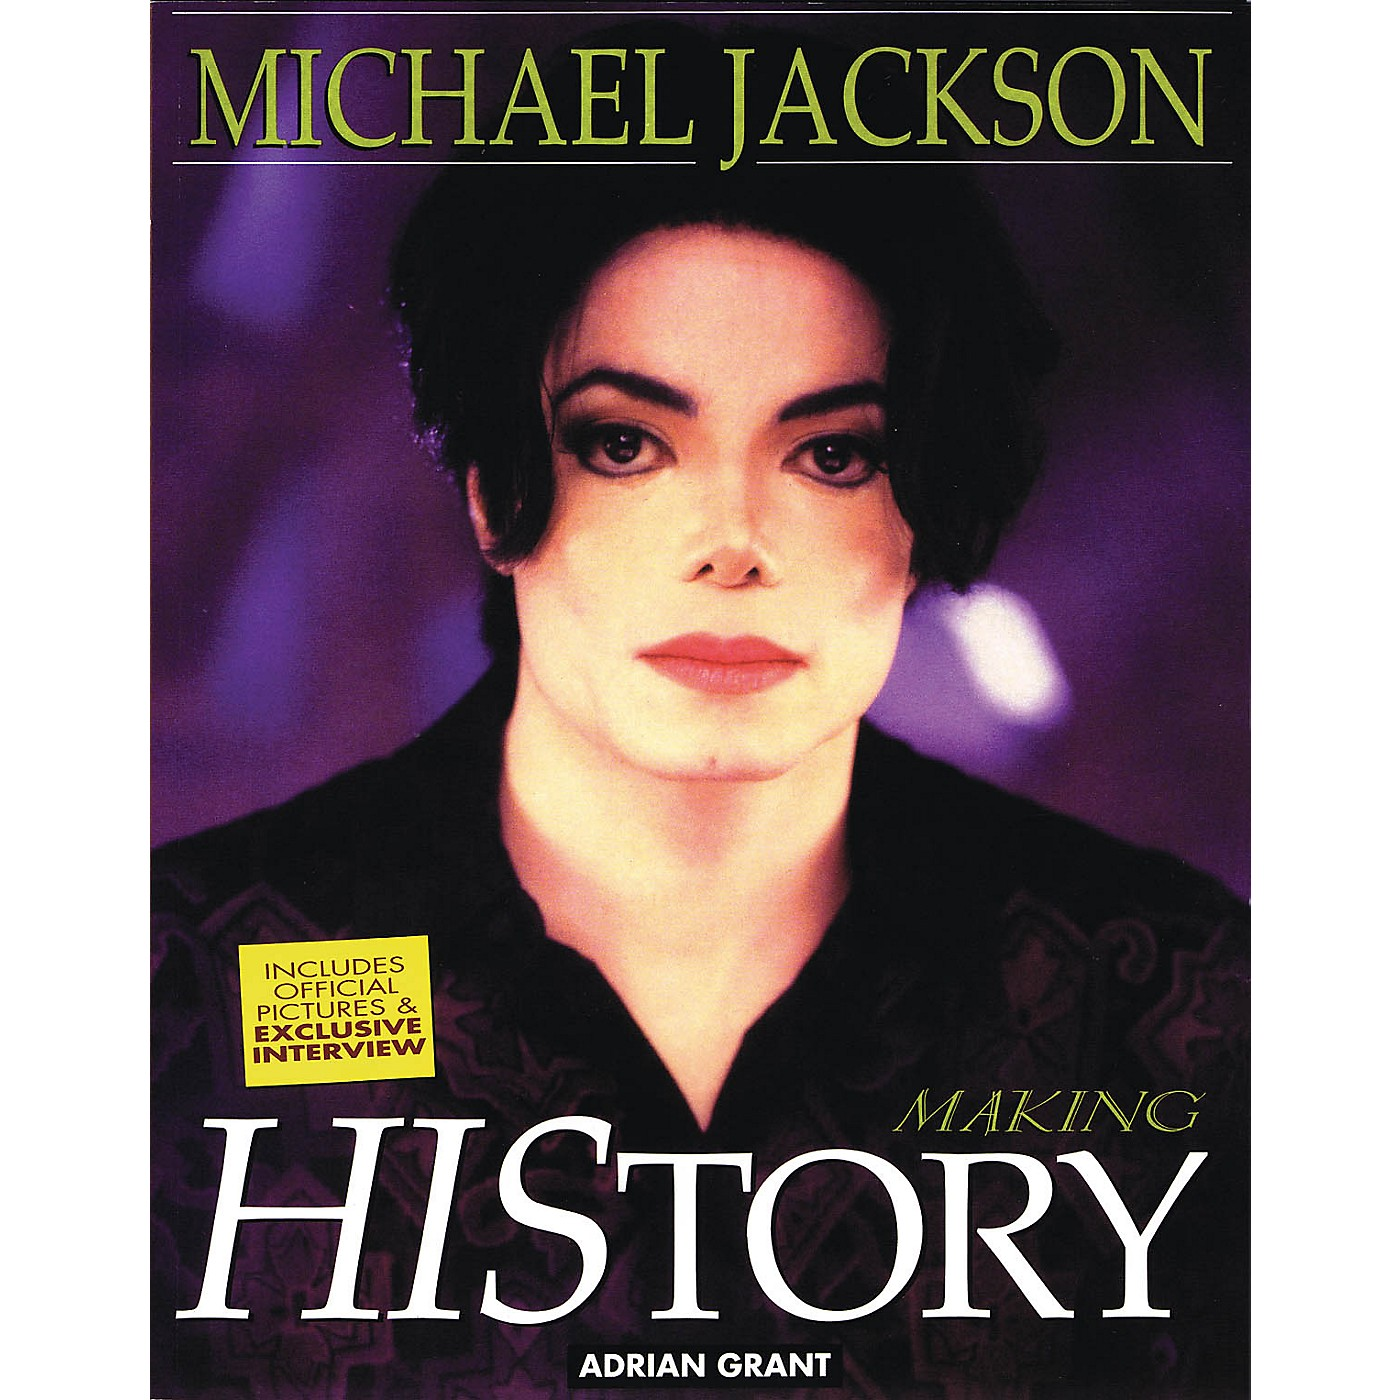 Omnibus Michael Jackson - Making History Omnibus Press Series Softcover Written by Adrian Grant thumbnail